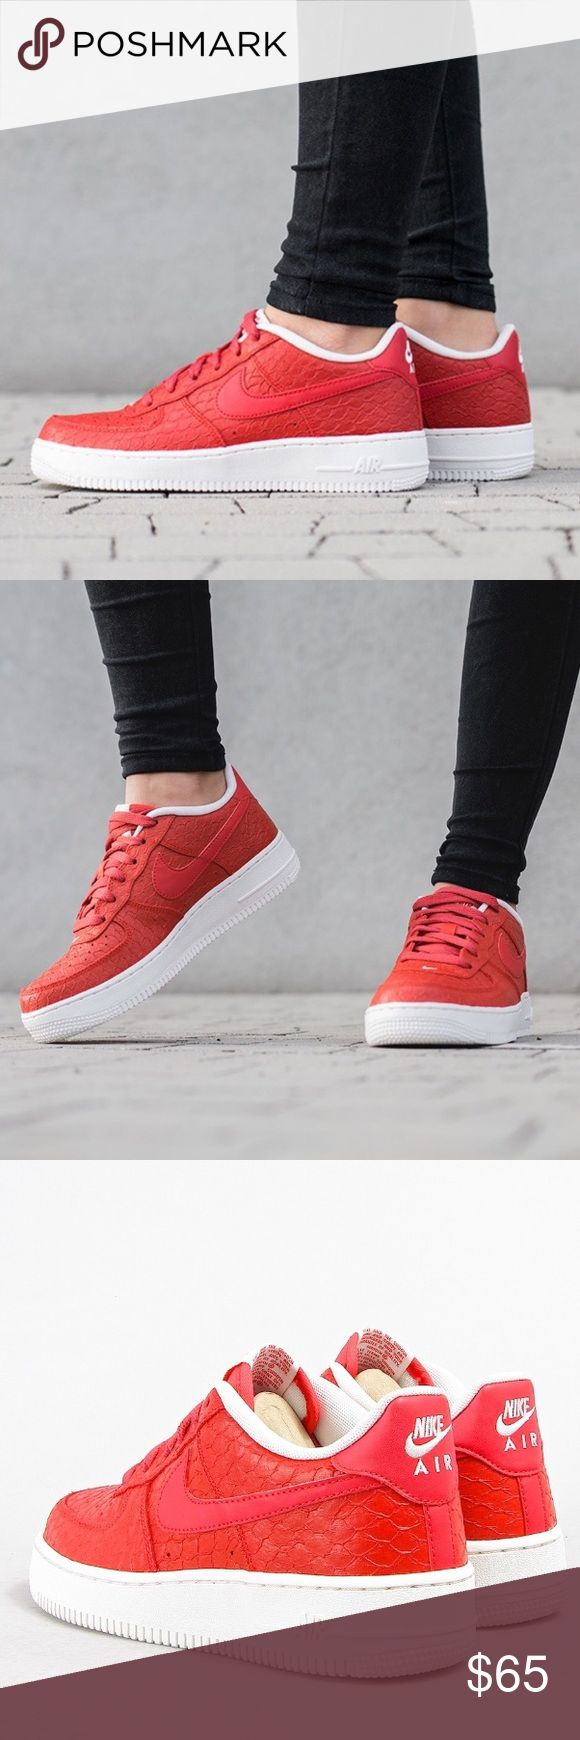 NIKE AIR FORCE 1 LV8 PREMIUM RED BRAND NEW SHOES Shoes are a size 6 youth which is a women's size 7.5. I added a sizing chart for reference. No box Nike Shoes Sneakers